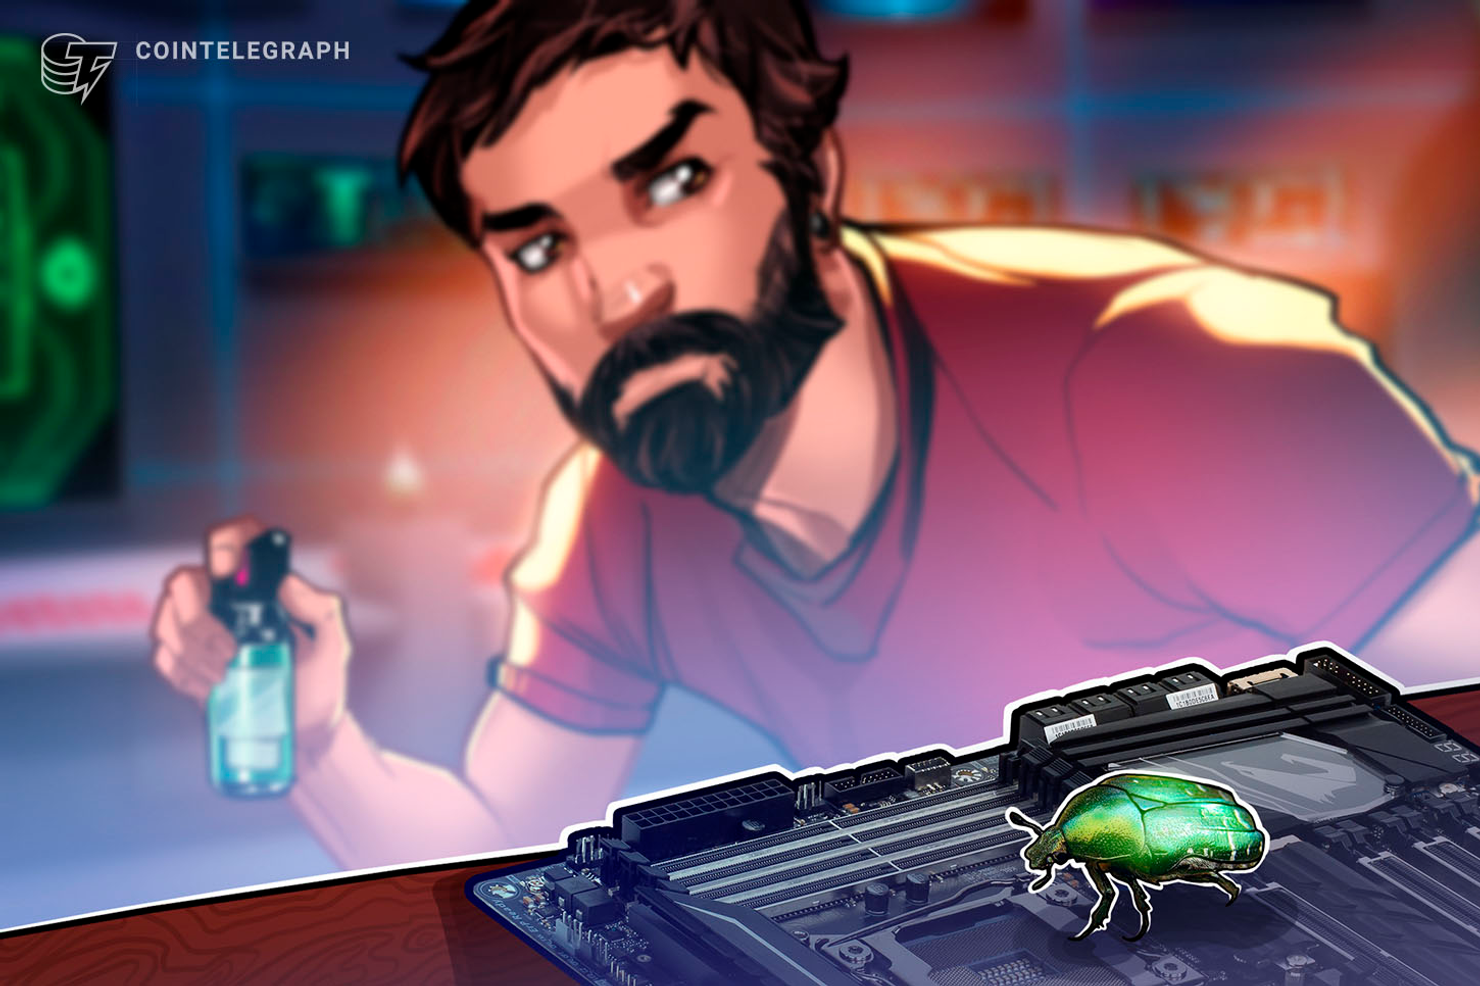 PIVX, Possibly Other PoS Chains Vulnerable to Bug, Attackers Profit